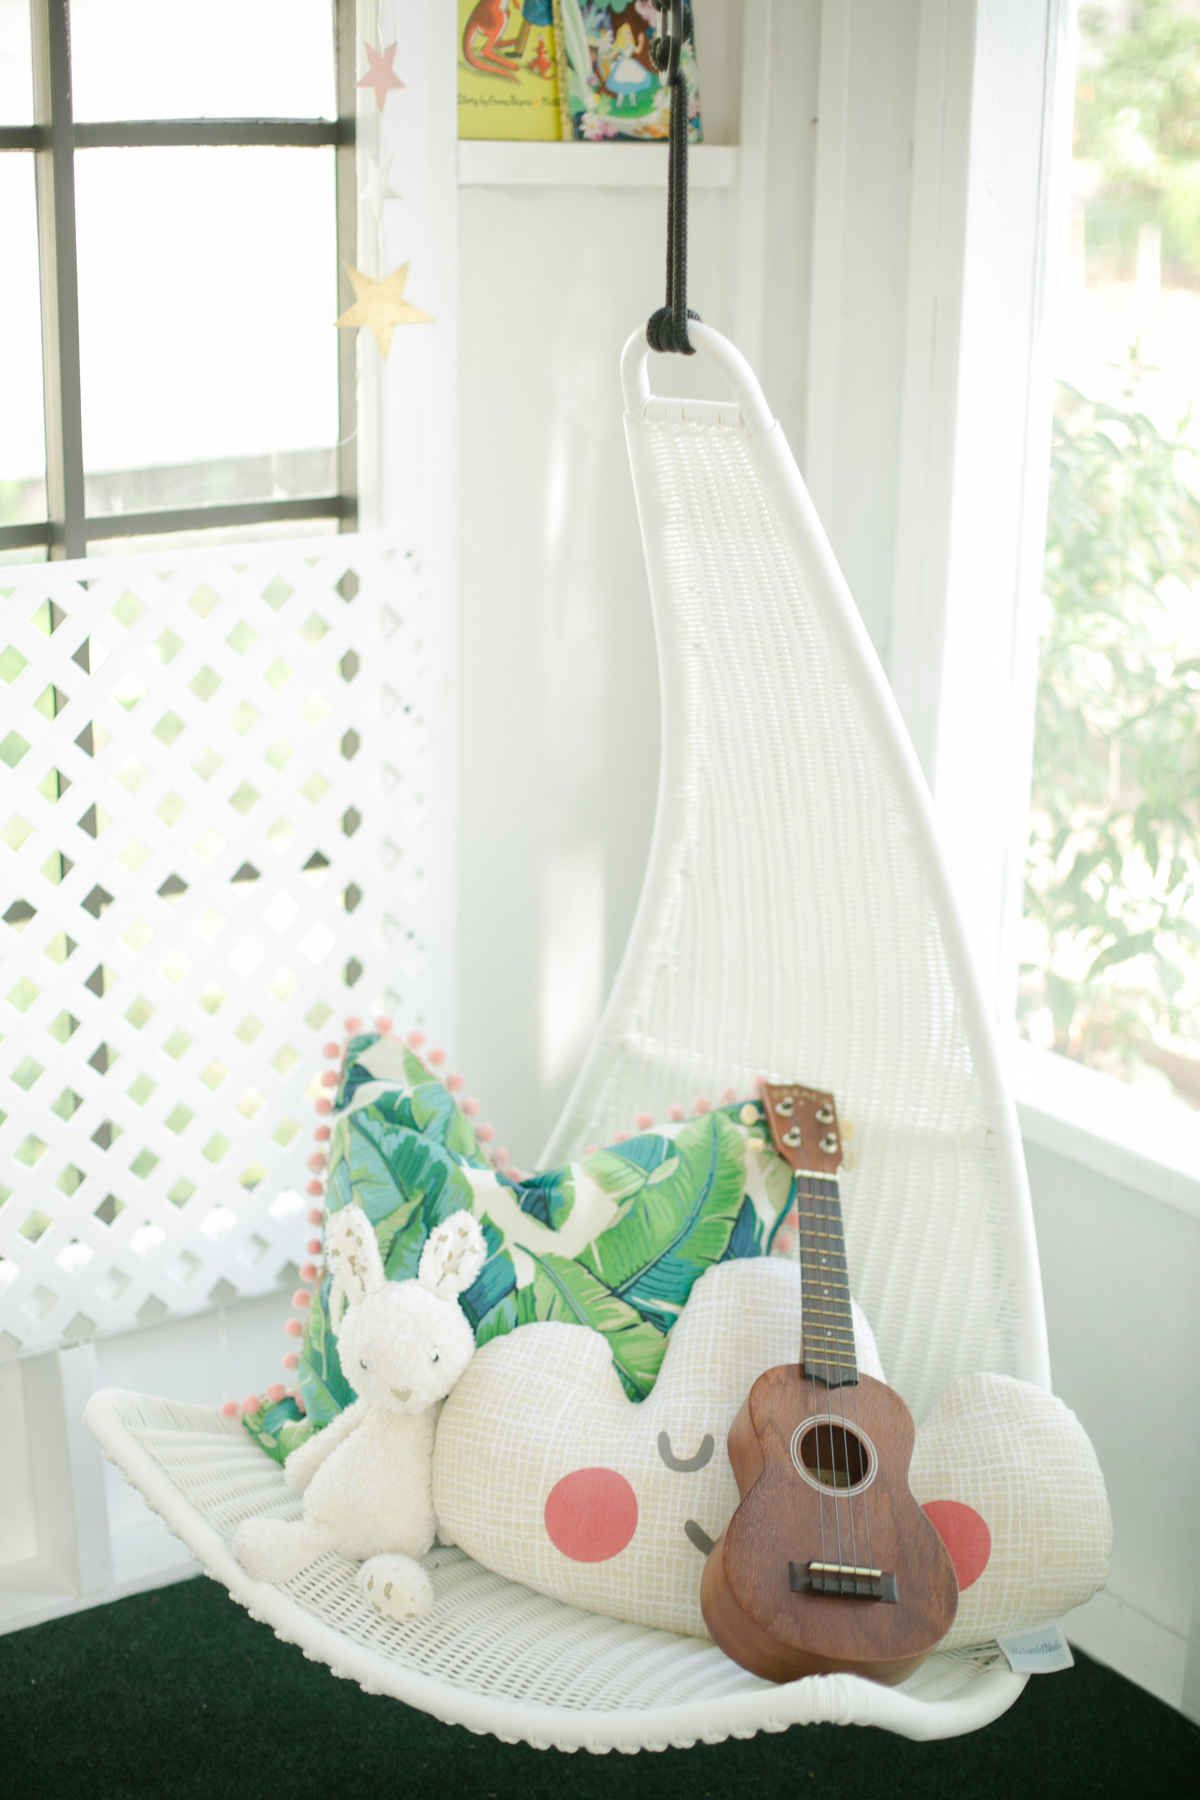 Uncategorized Hanging Chair For Kids Room playhouse plans inspiration hanging chair reading nooks and inspiration